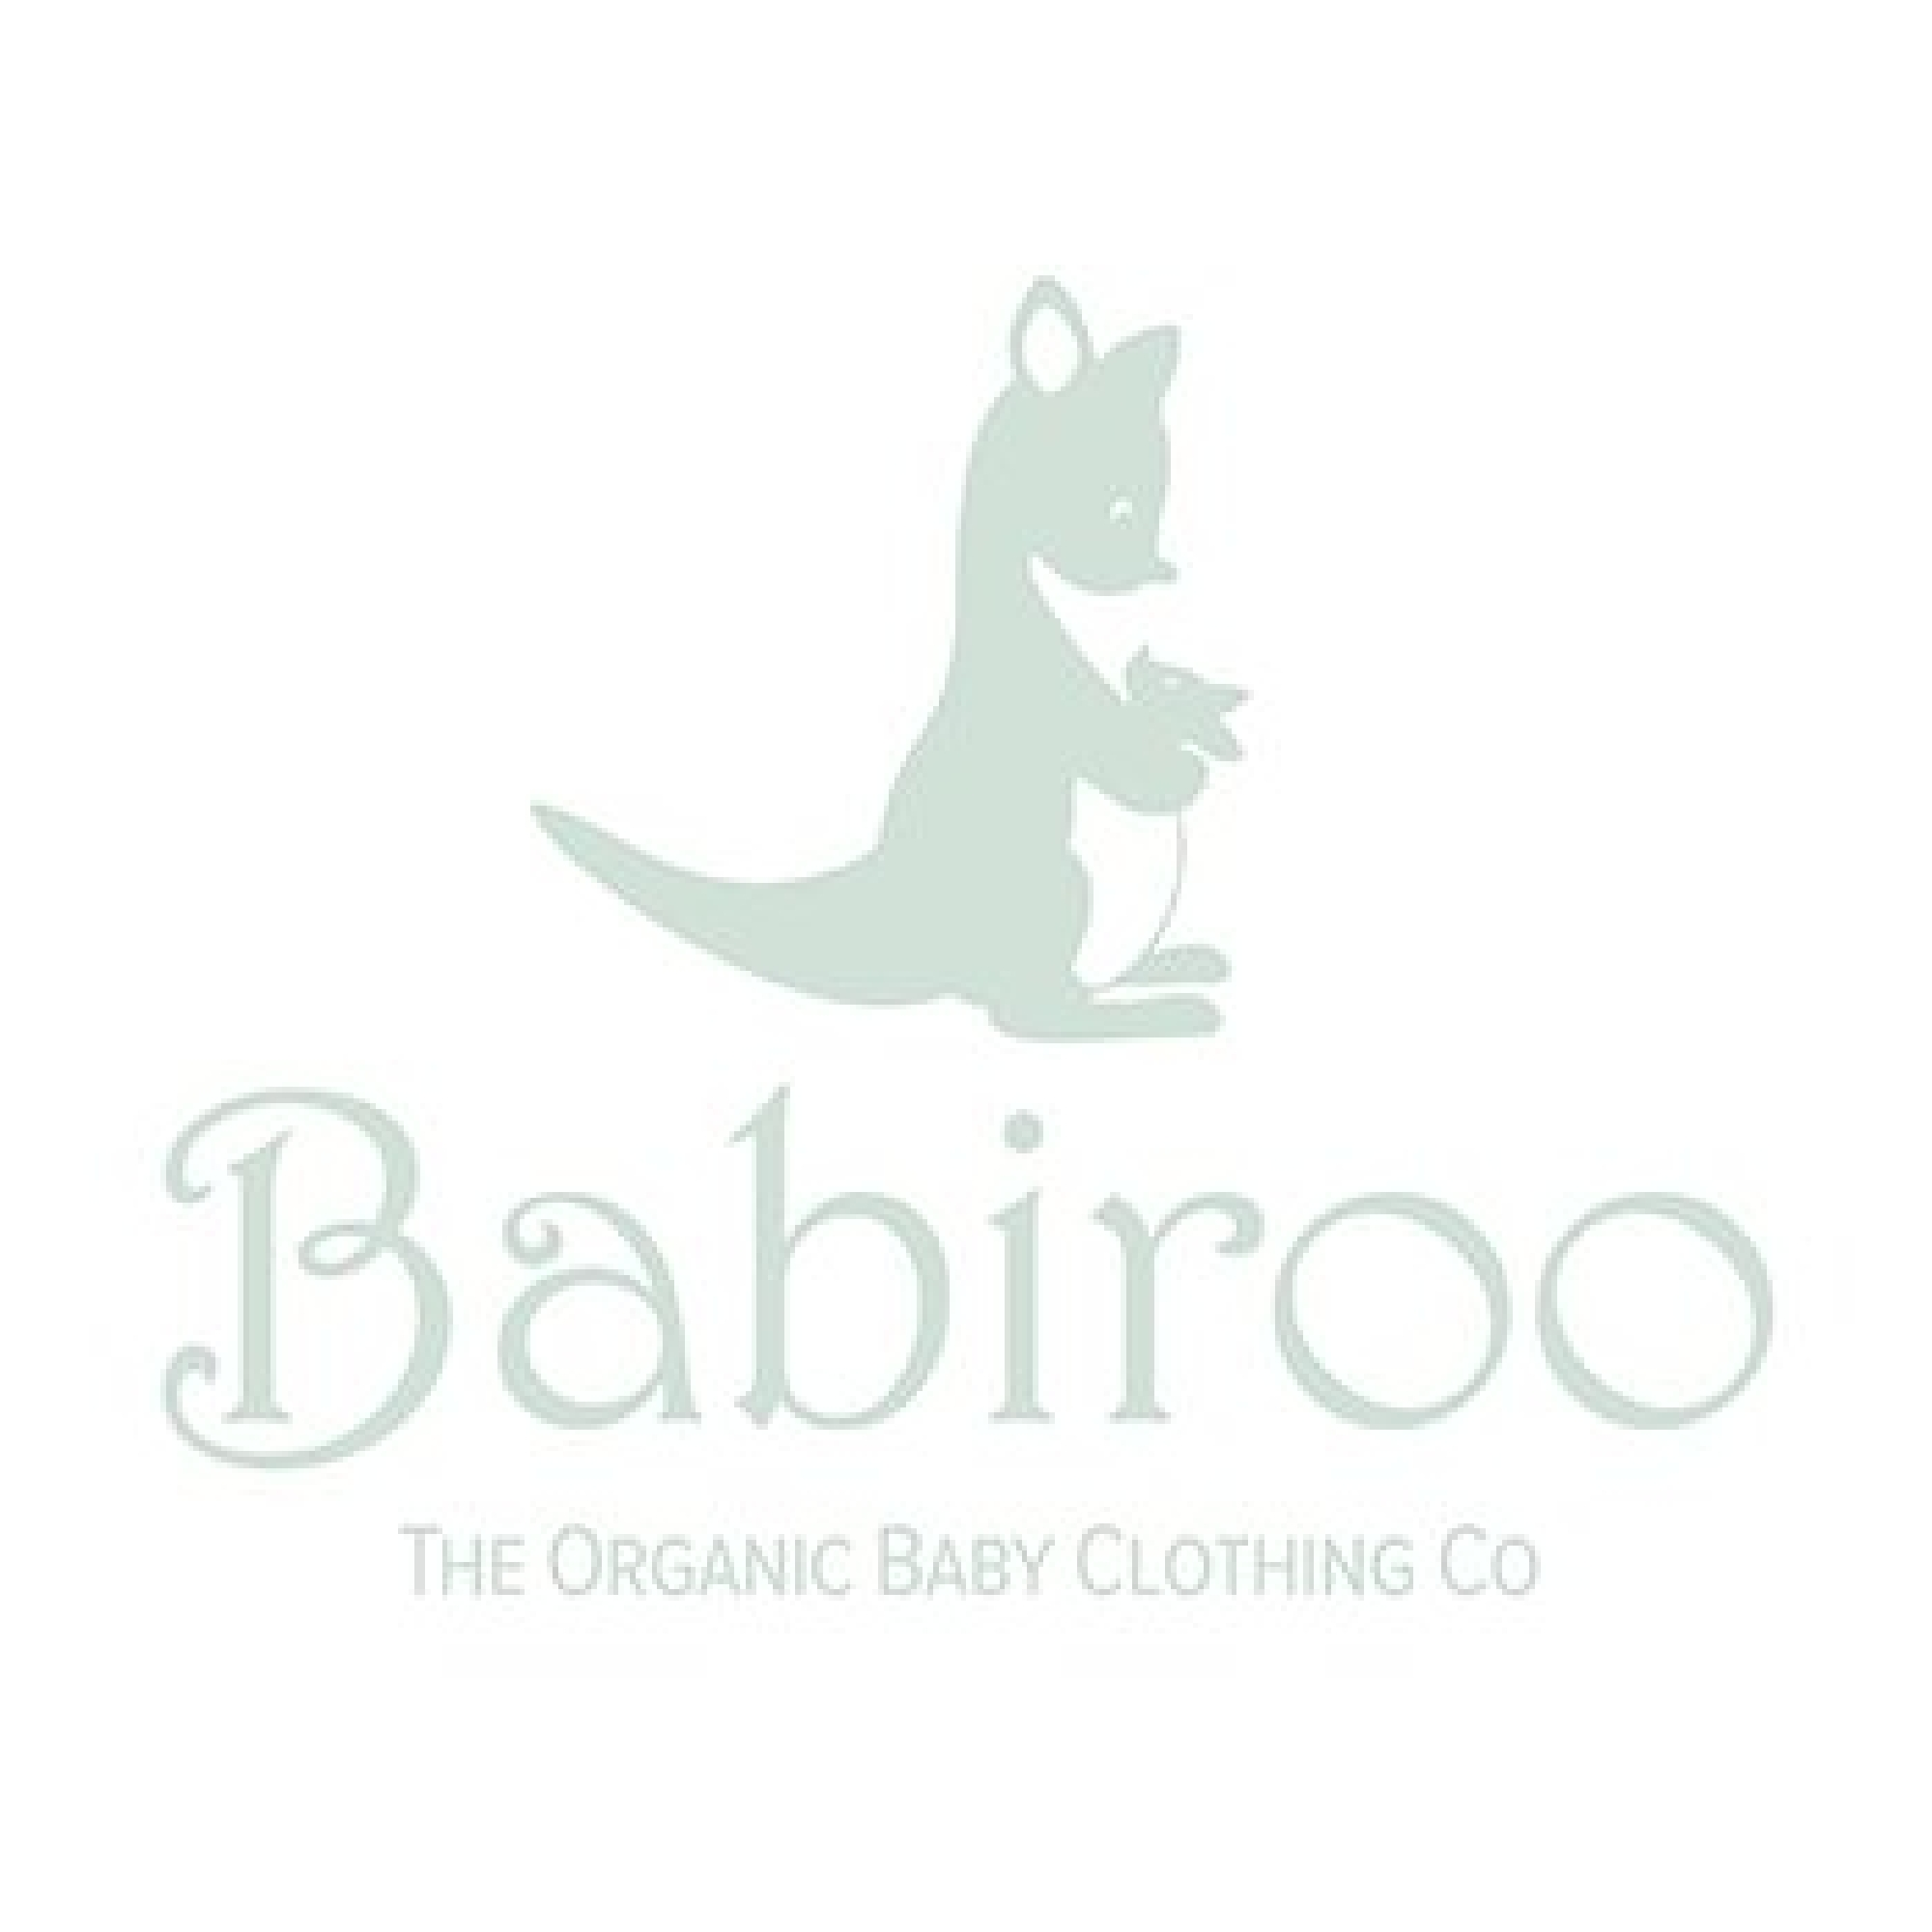 Man Alive! Parenting Advice for Dads from Babiroo